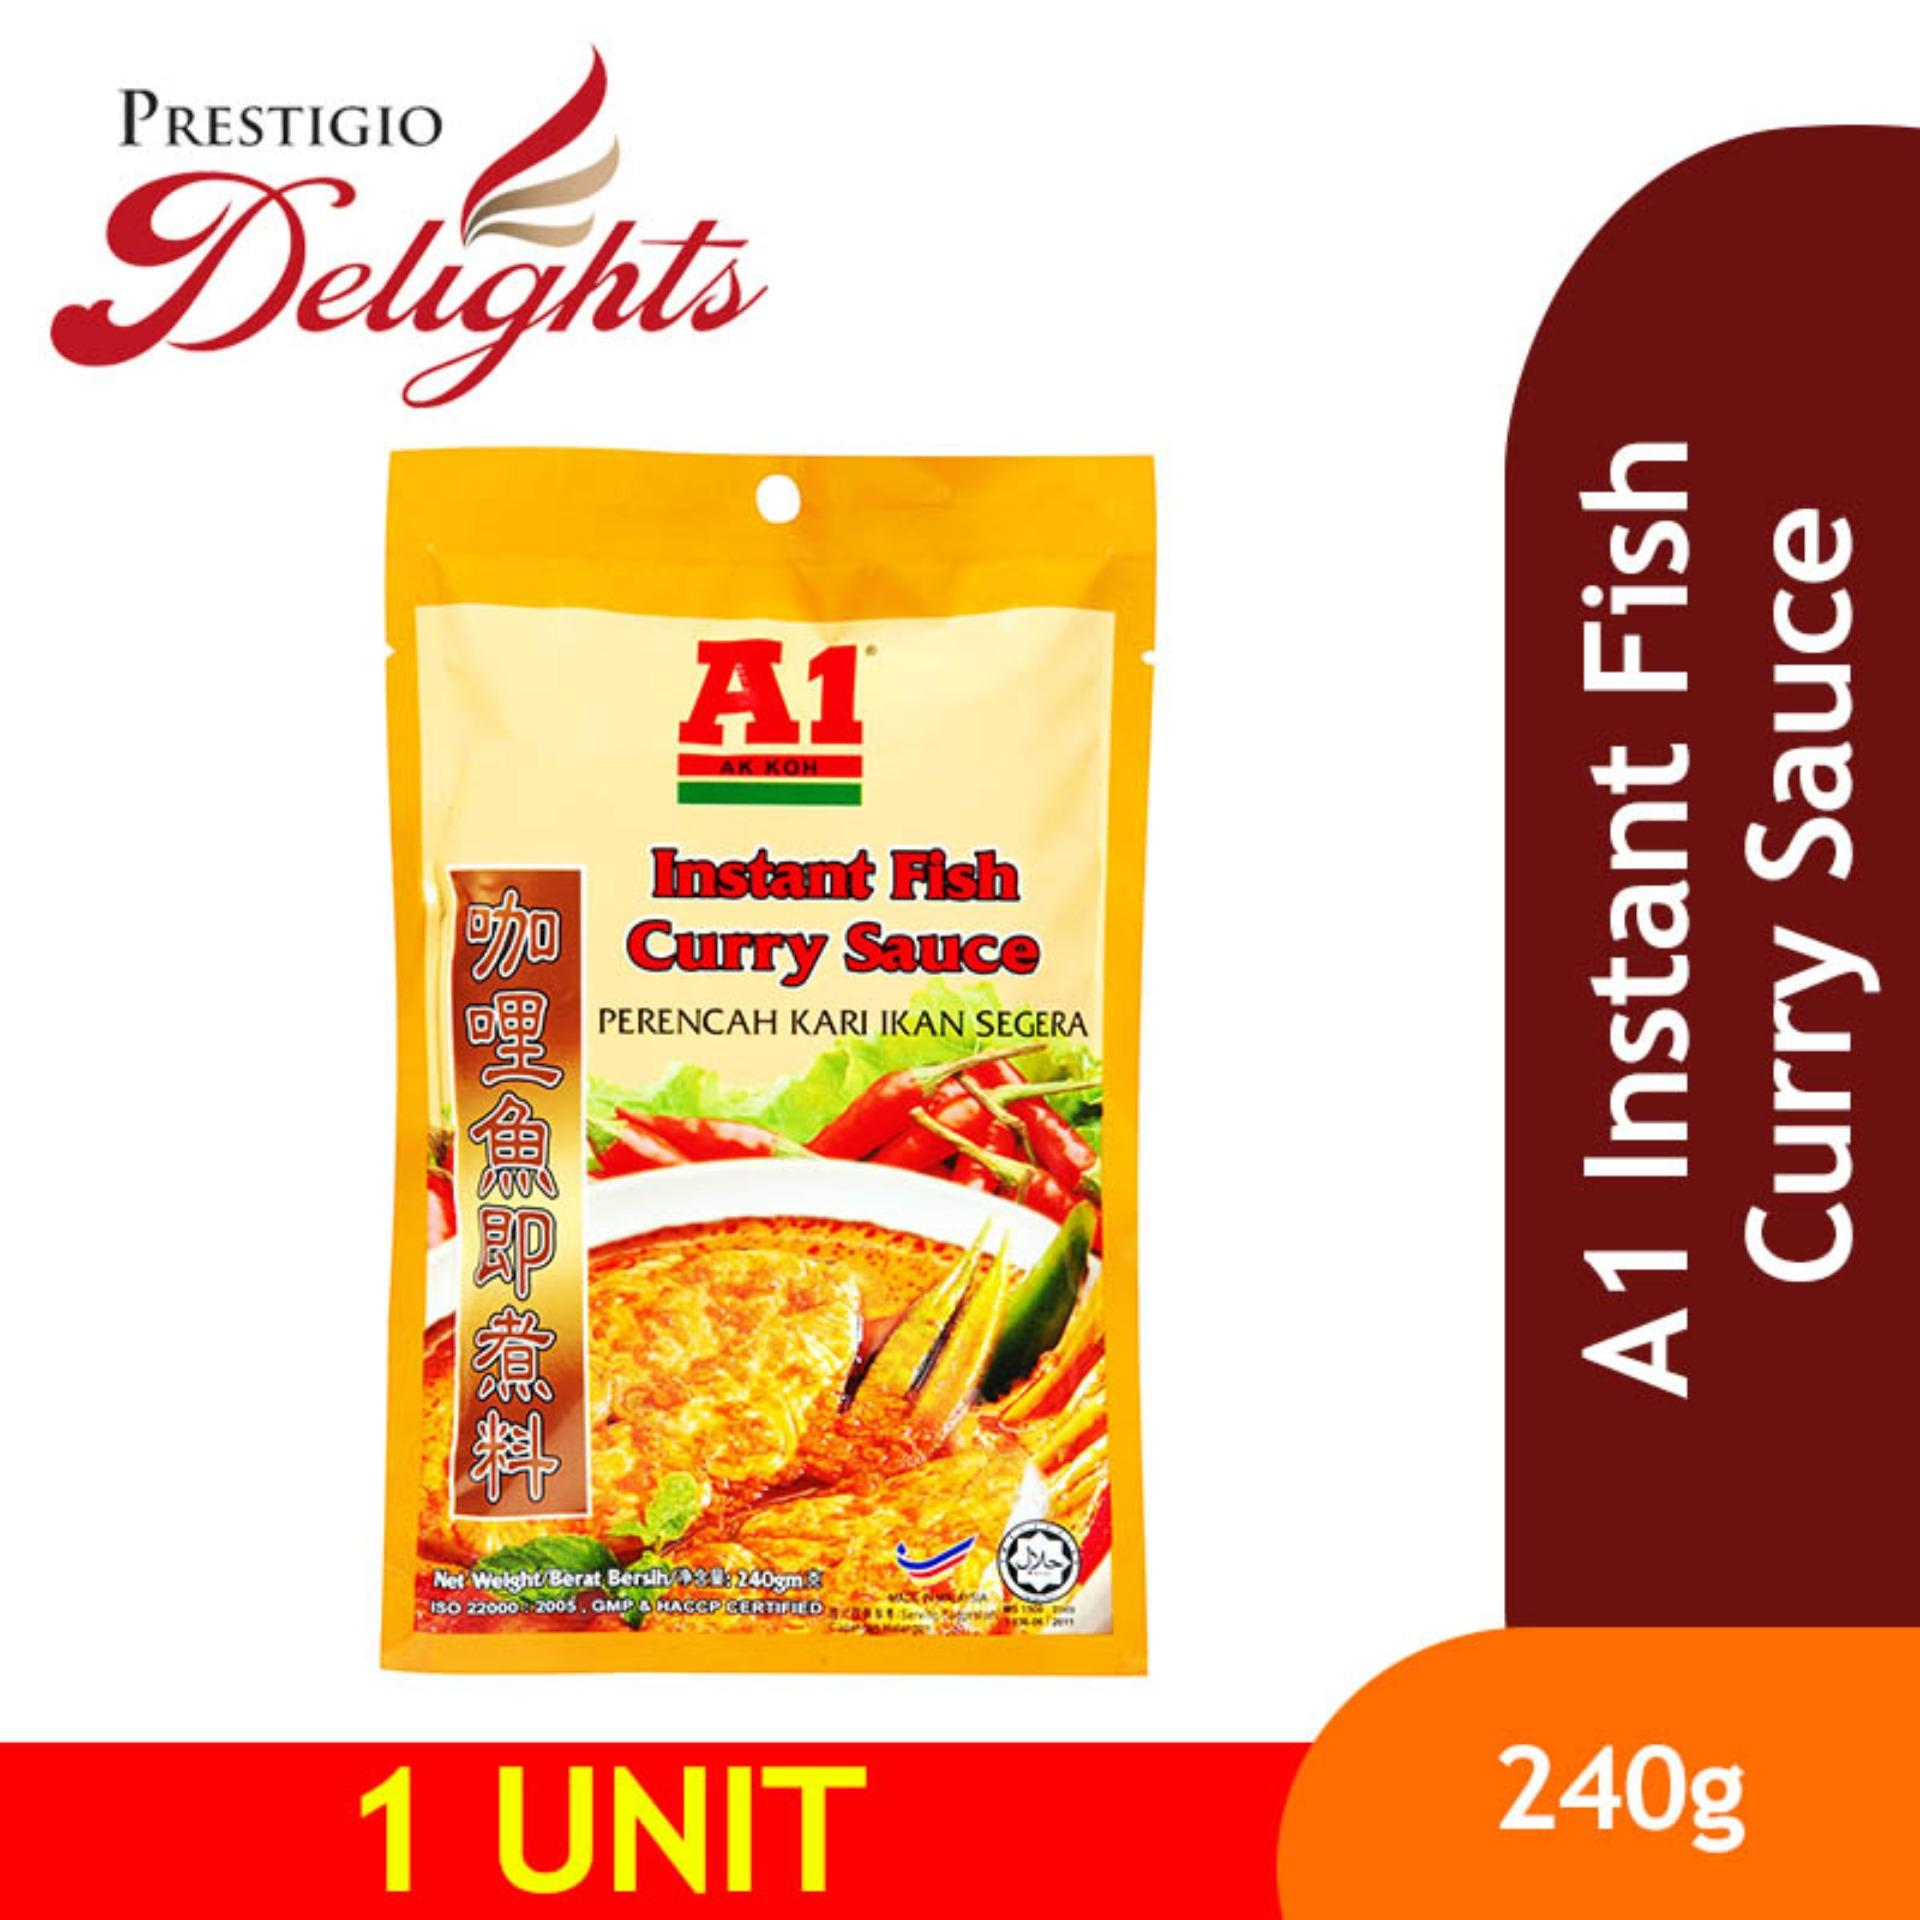 A1 Instant Fish Curry Sauce 240g By Prestigio Delights.